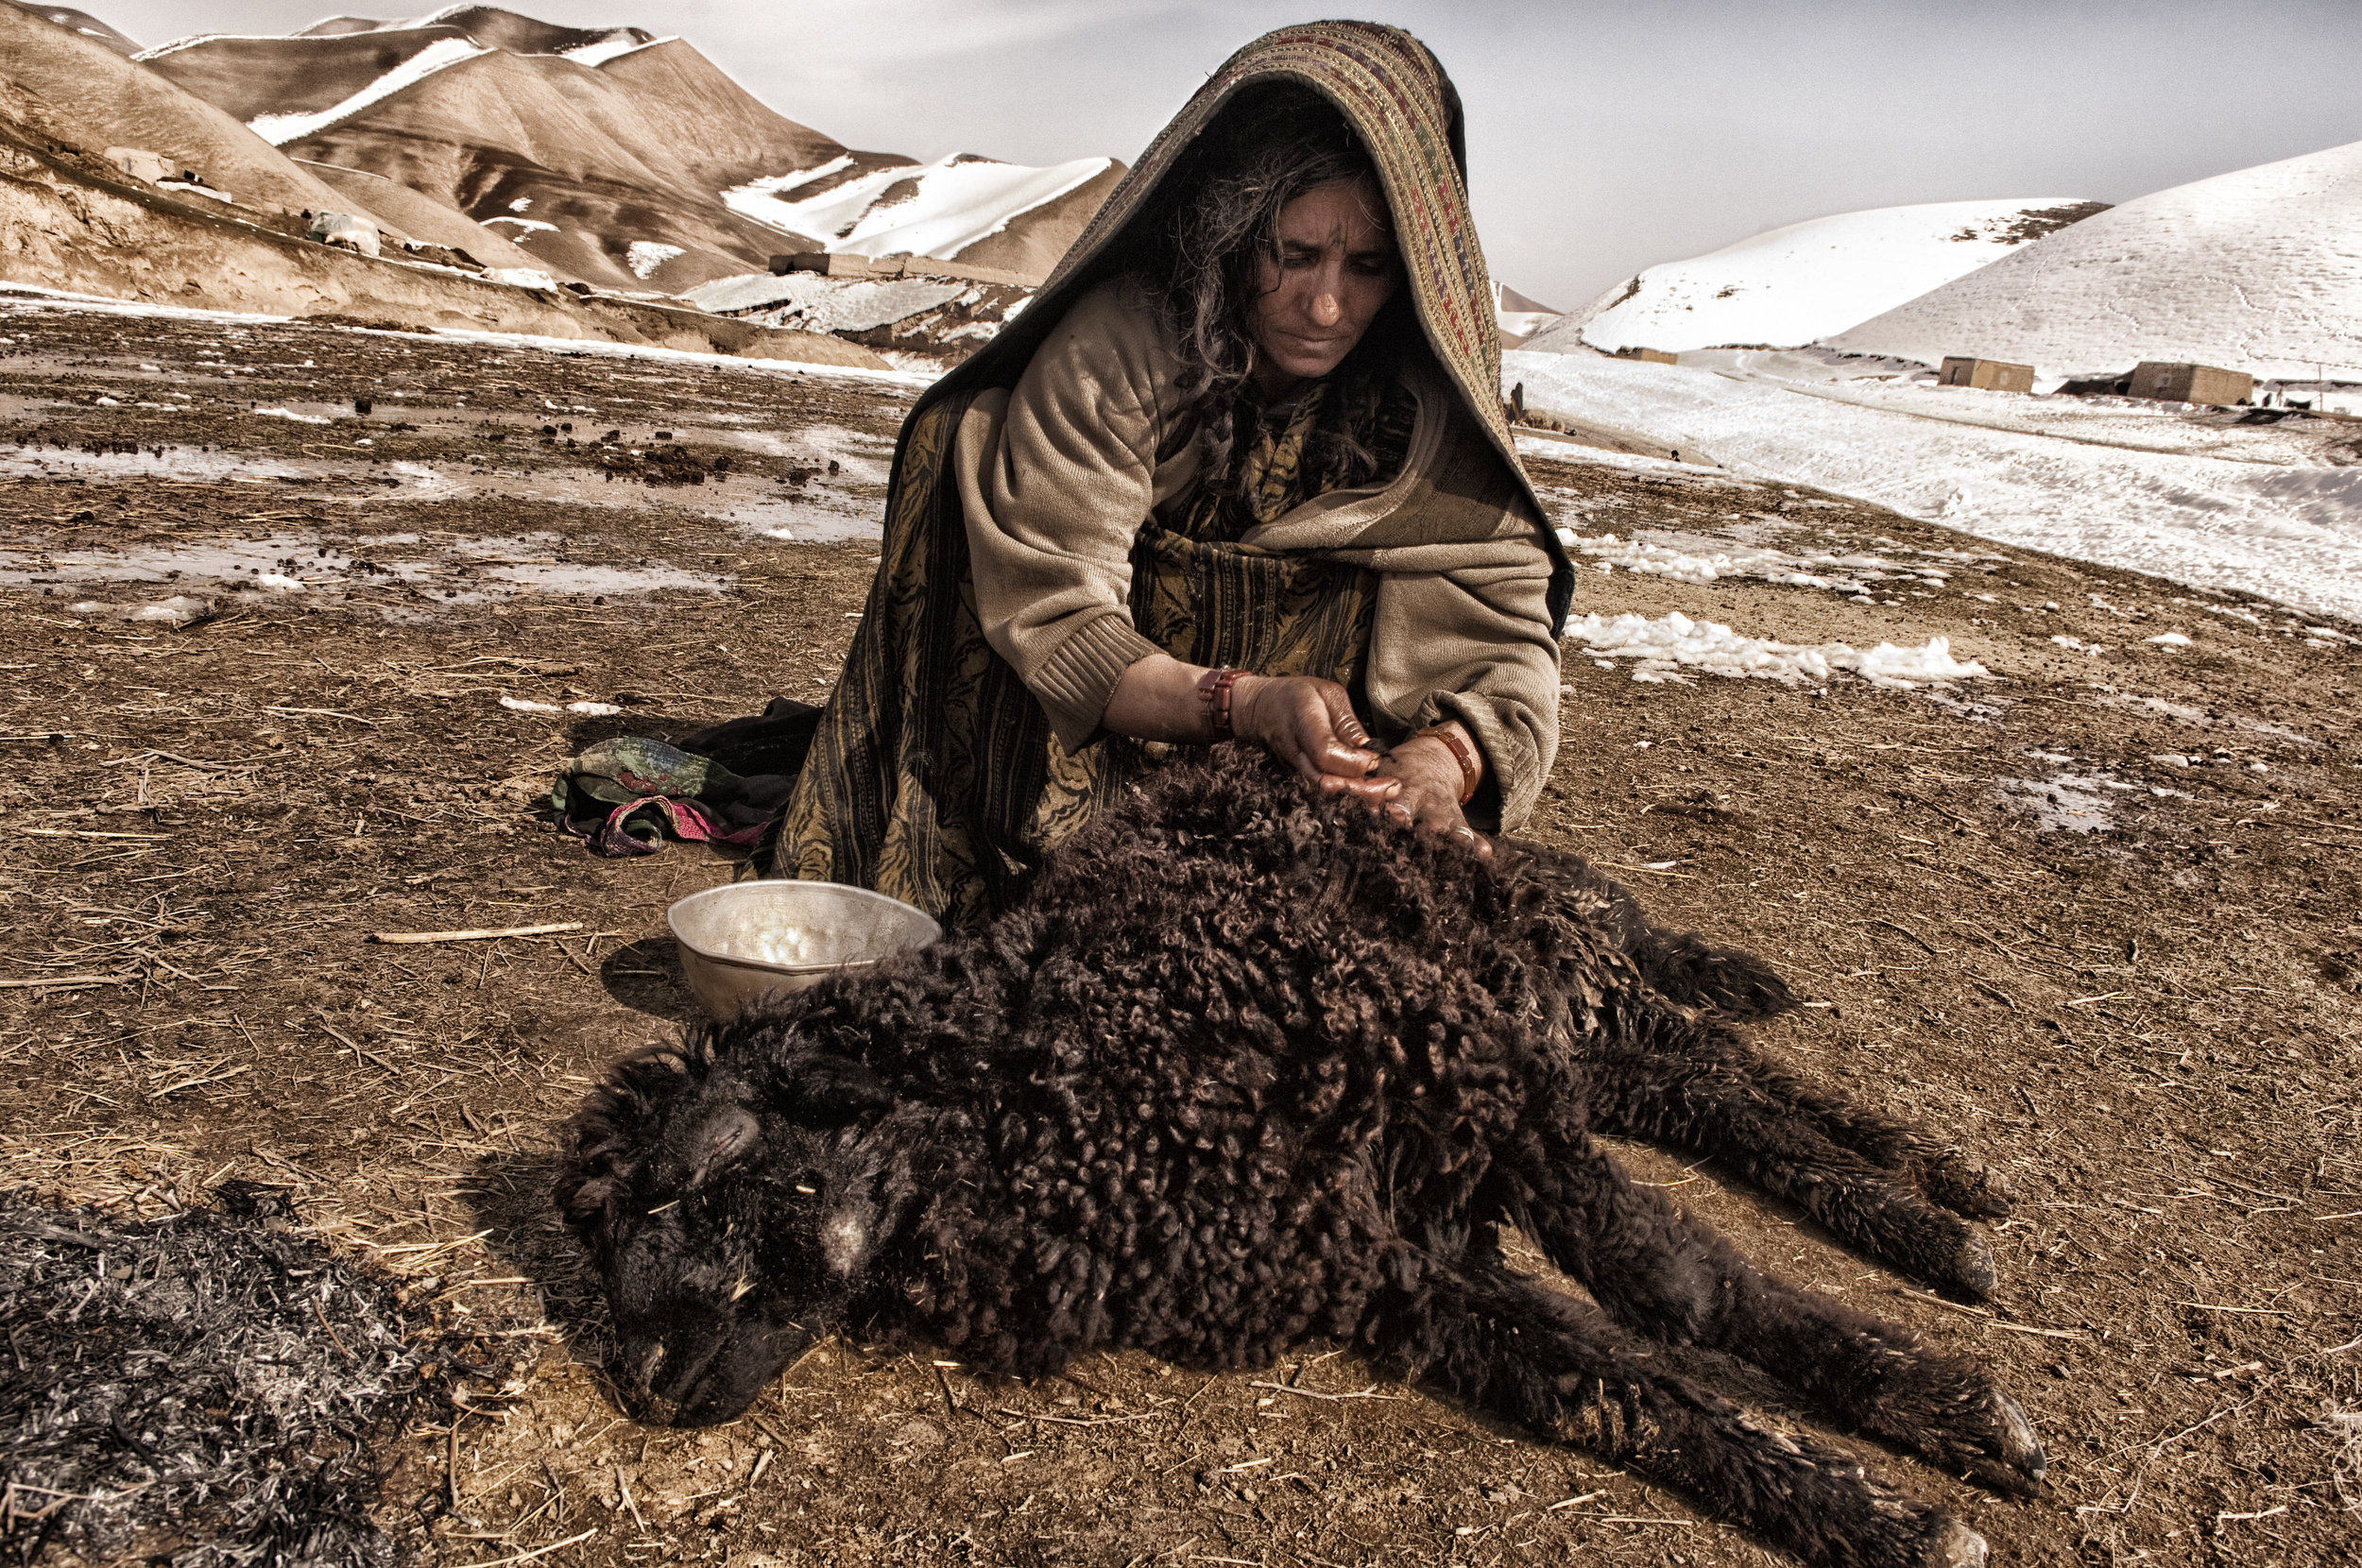 An Afghan woman cares for her dying sheep in the village of Qasabach Qala, Faryab Province, Northwest Afghanistan on Friday 15th February, 2008. (Photo/Mark Pearson)